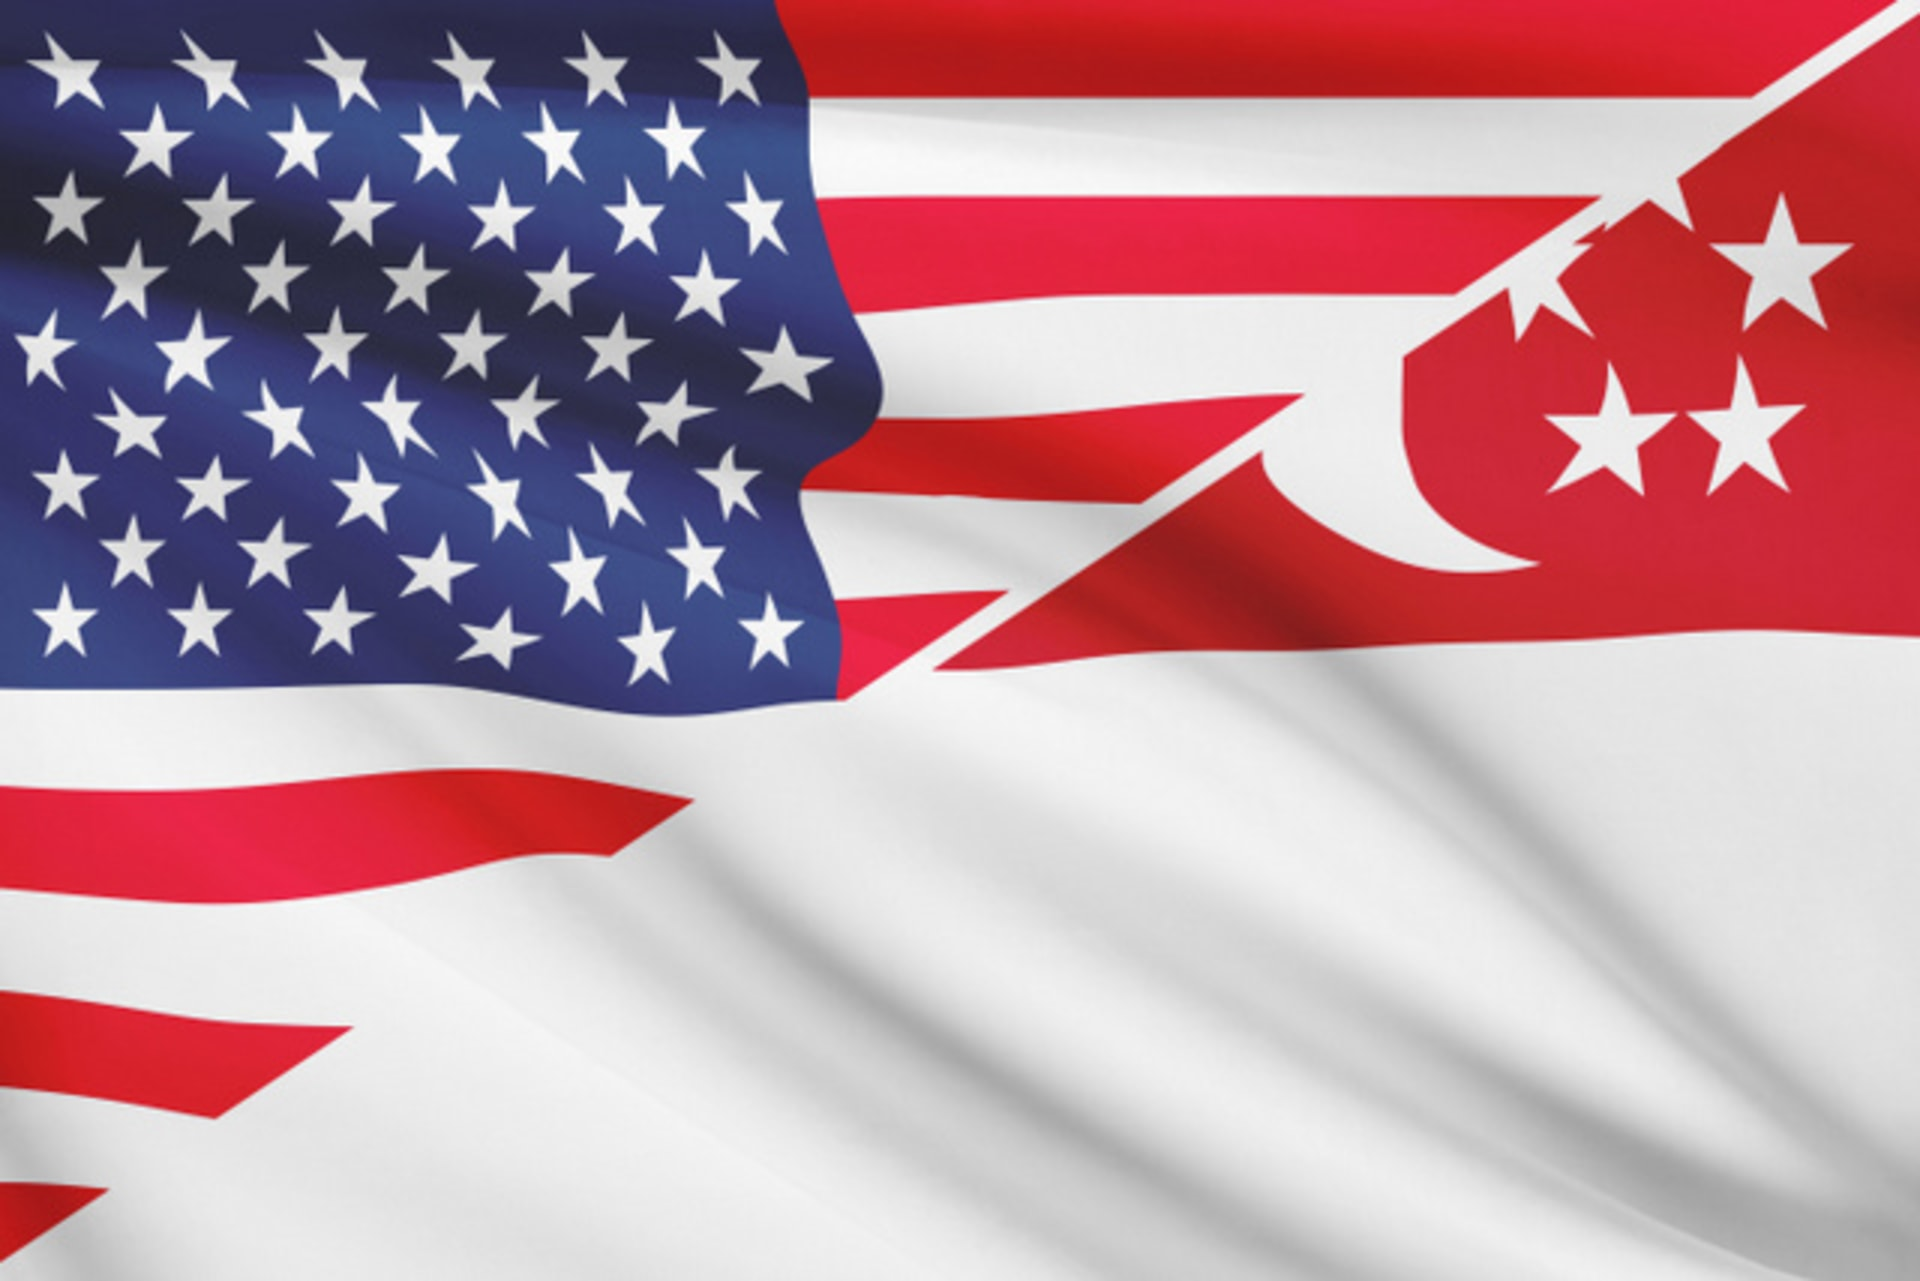 Ease of Doing Business: Singapore vs USA